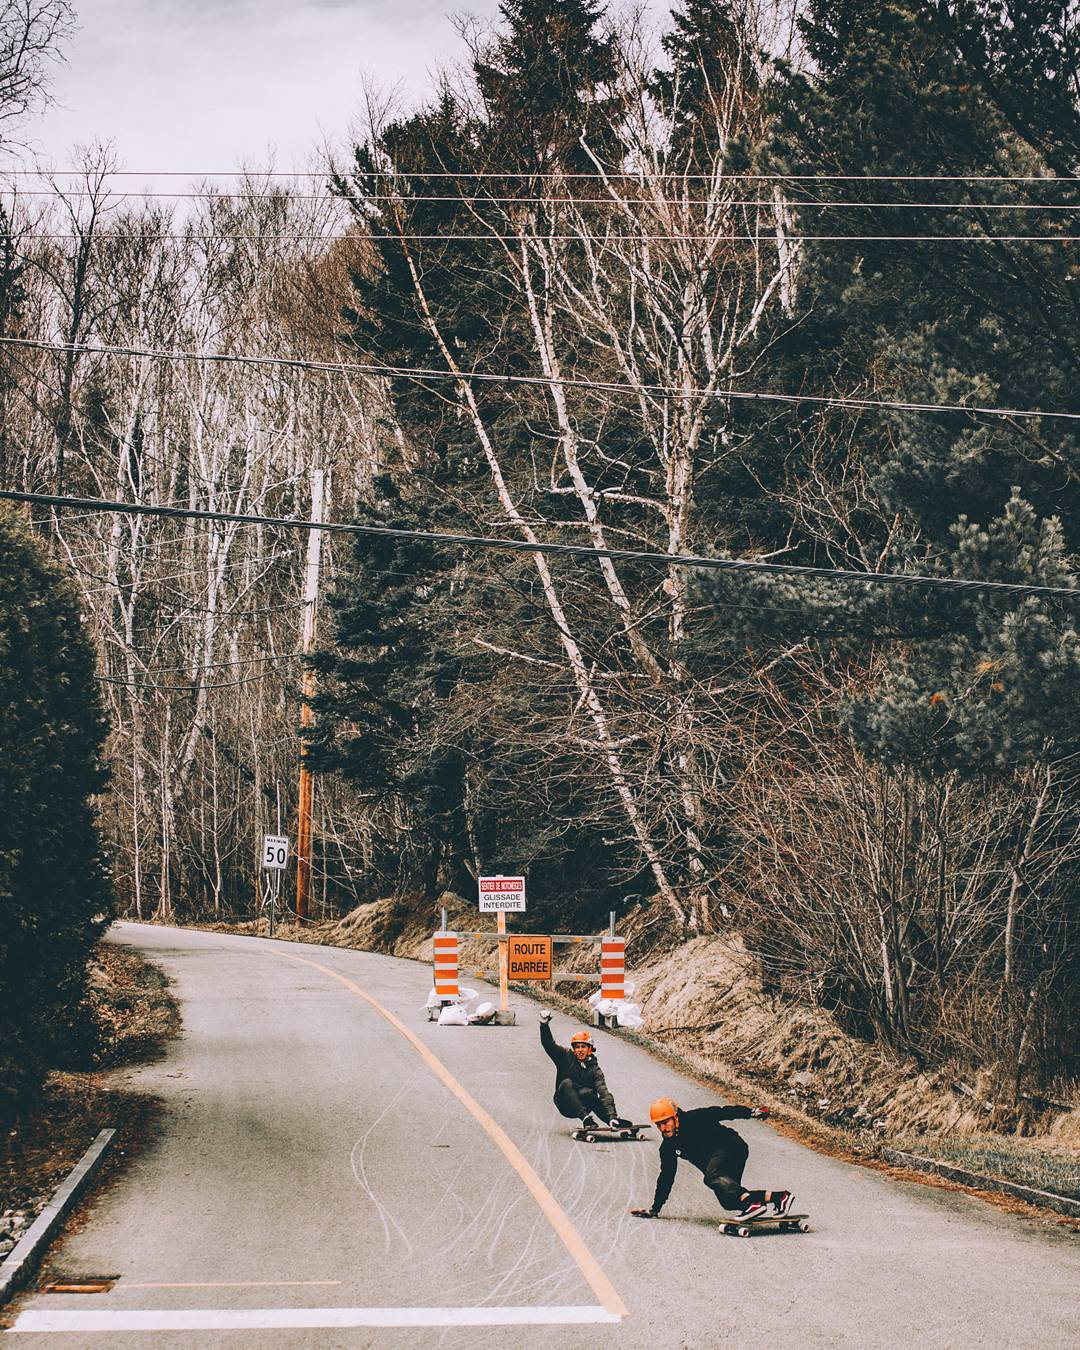 This road is so steep that it's close in the winter.  Team riders @lp_dery and @charlesouimet took advantage of the early season and shred both 20% hairpins.  #restlessboards #restlesswim #restlessfishbowl